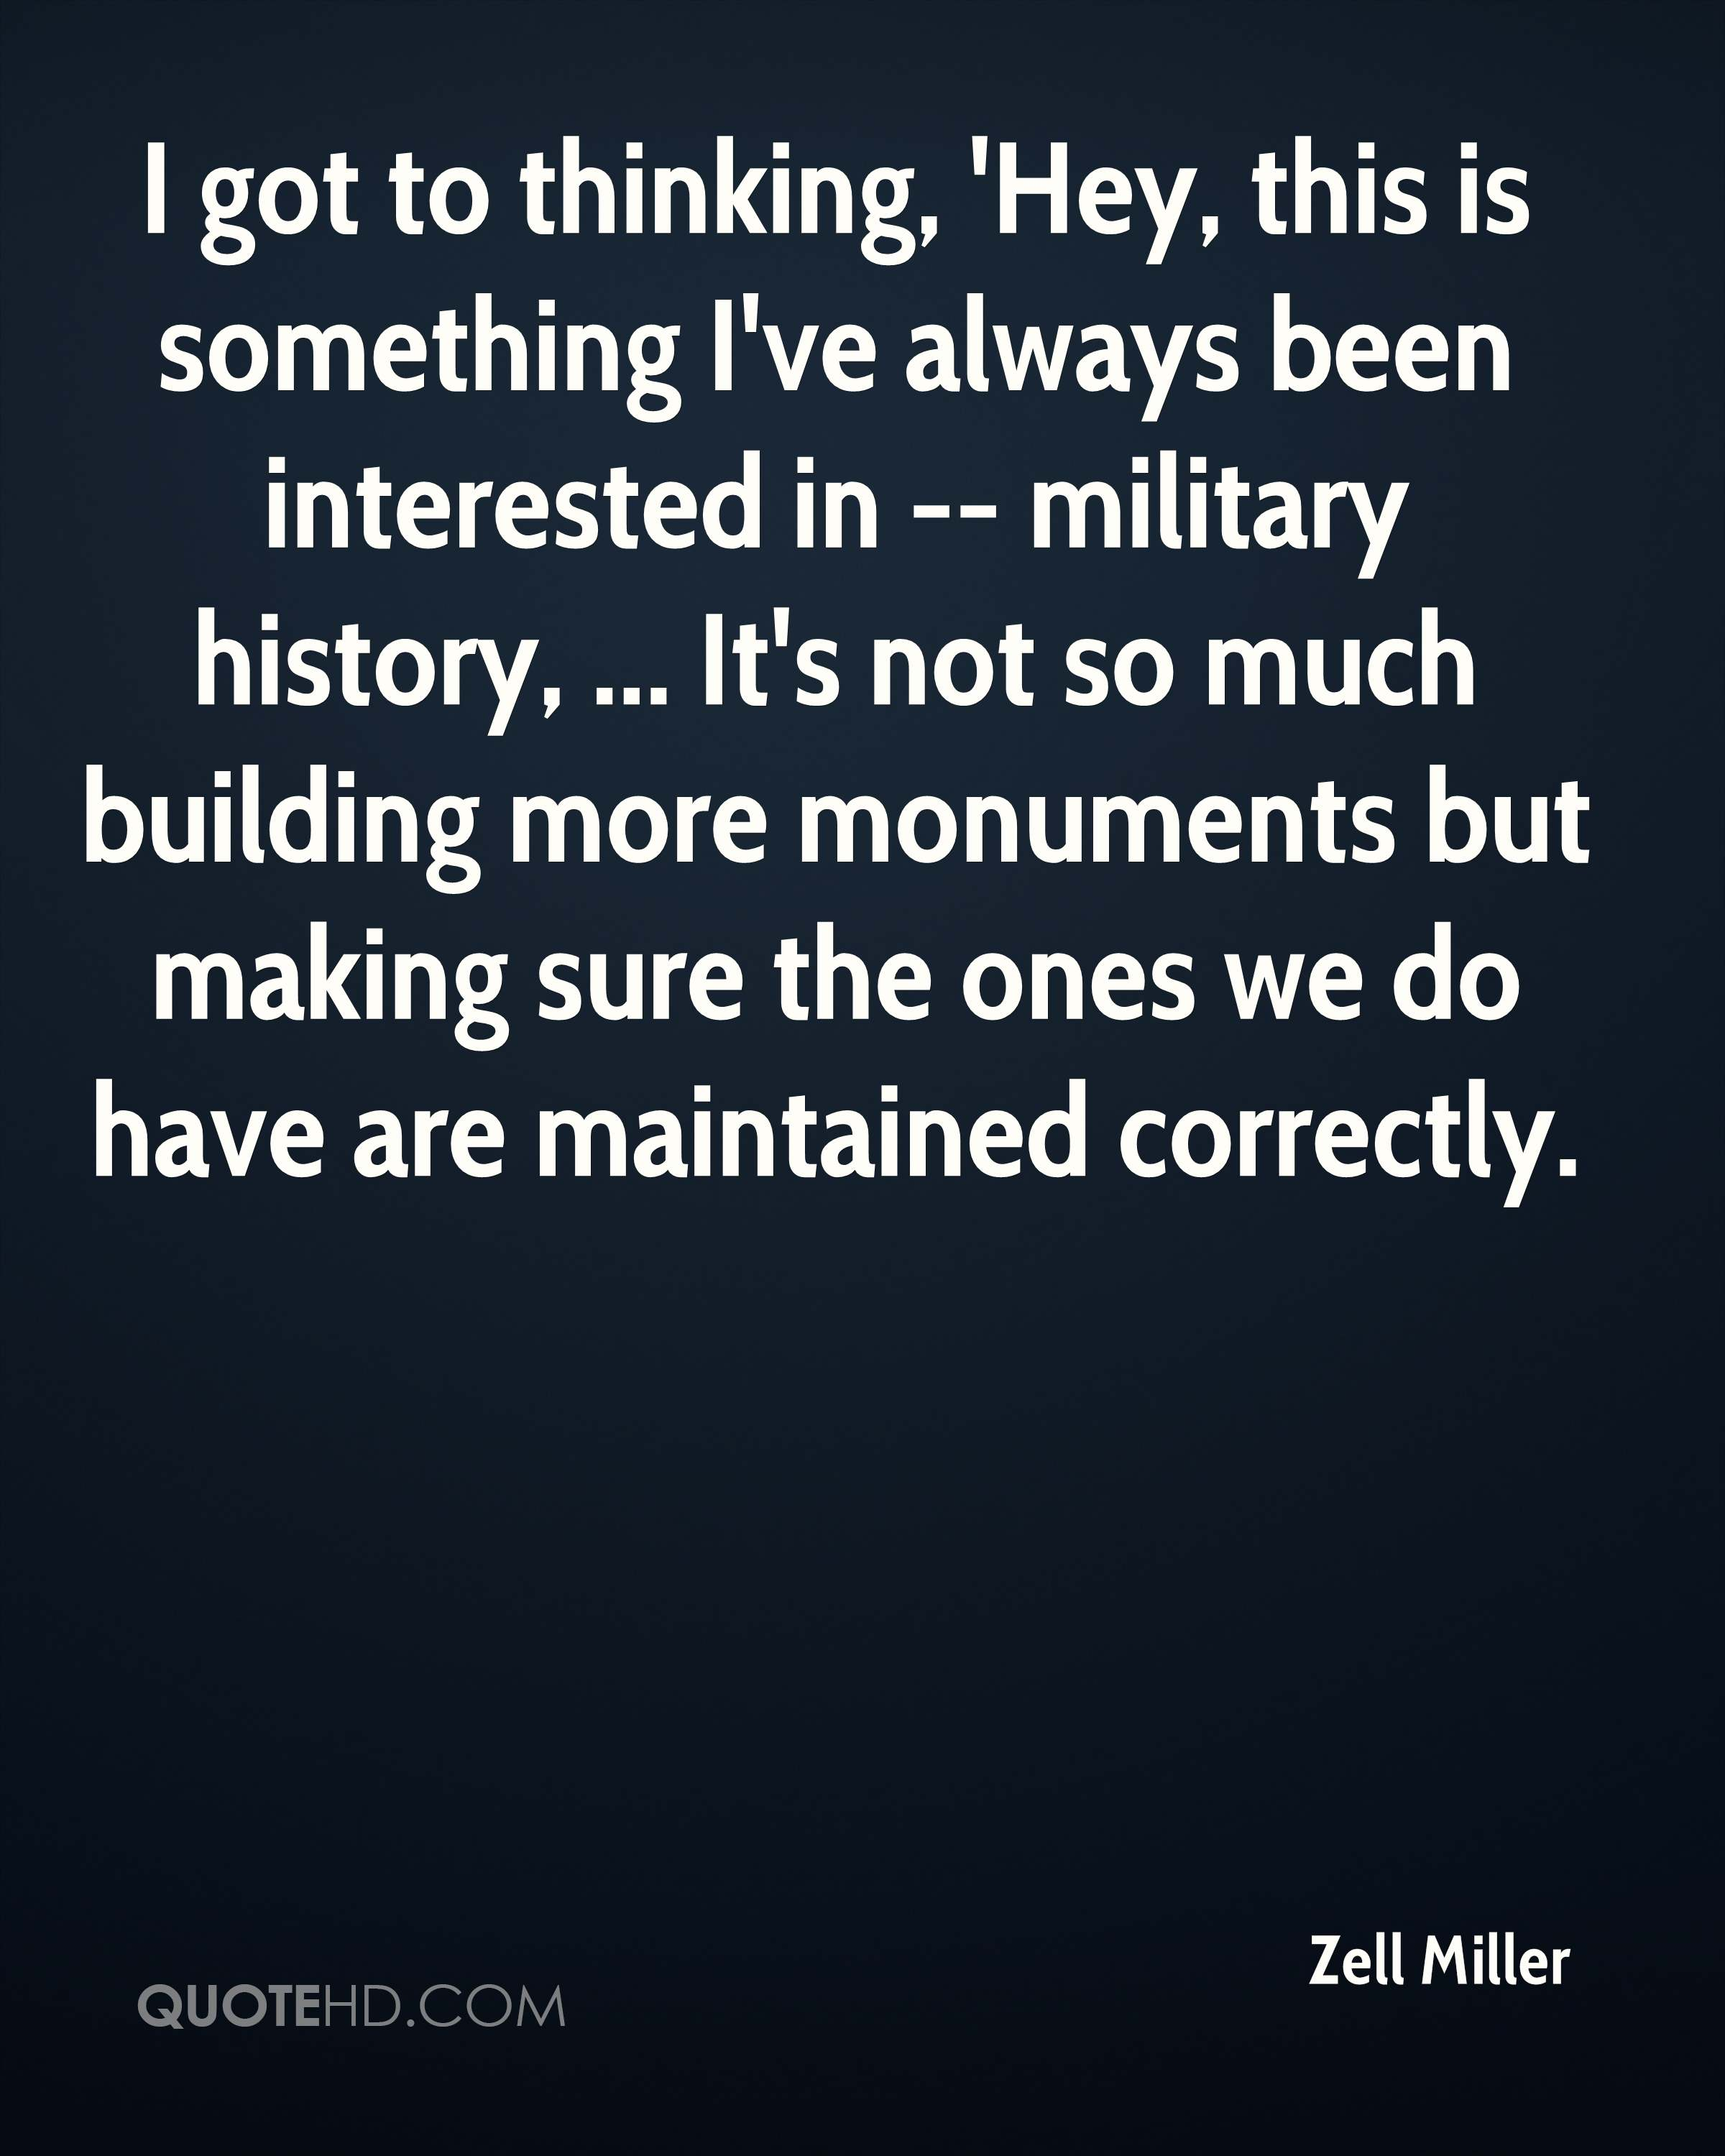 I got to thinking, 'Hey, this is something I've always been interested in -- military history, ... It's not so much building more monuments but making sure the ones we do have are maintained correctly.